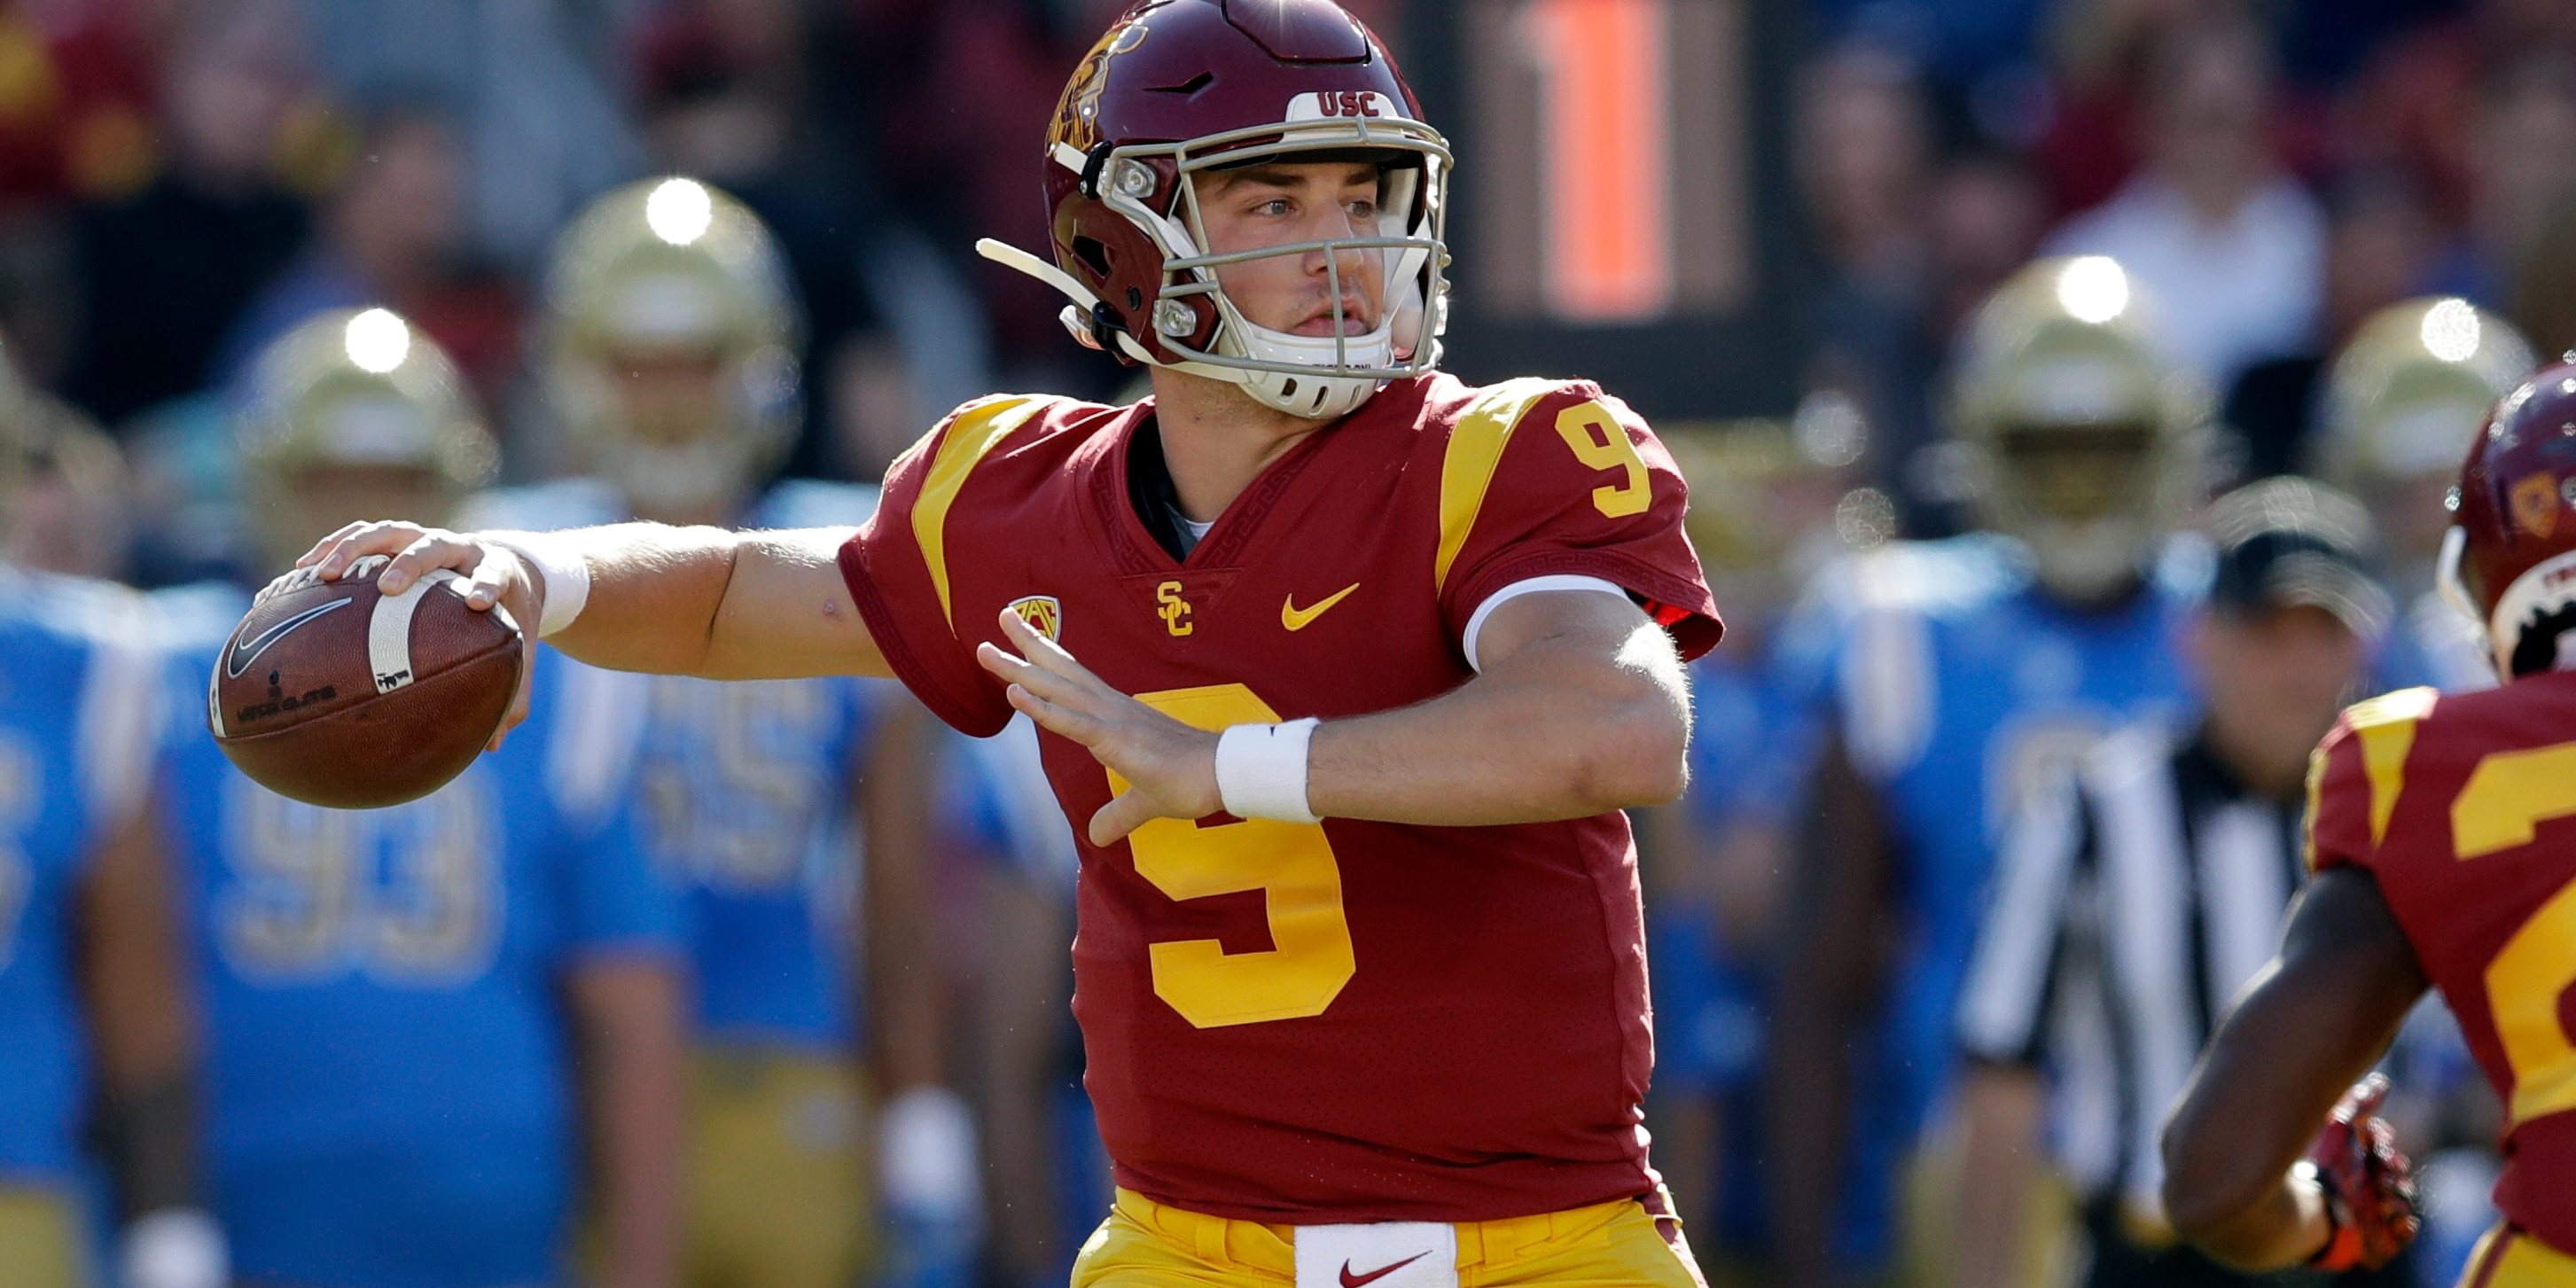 In this Nov. 23, 2019, file photo, Southern California quarterback Kedon Slovis throws against UCLA during the first half of an NCAA college football game in Los Angeles. (AP Photo/Marcio Jose Sanchez, File)